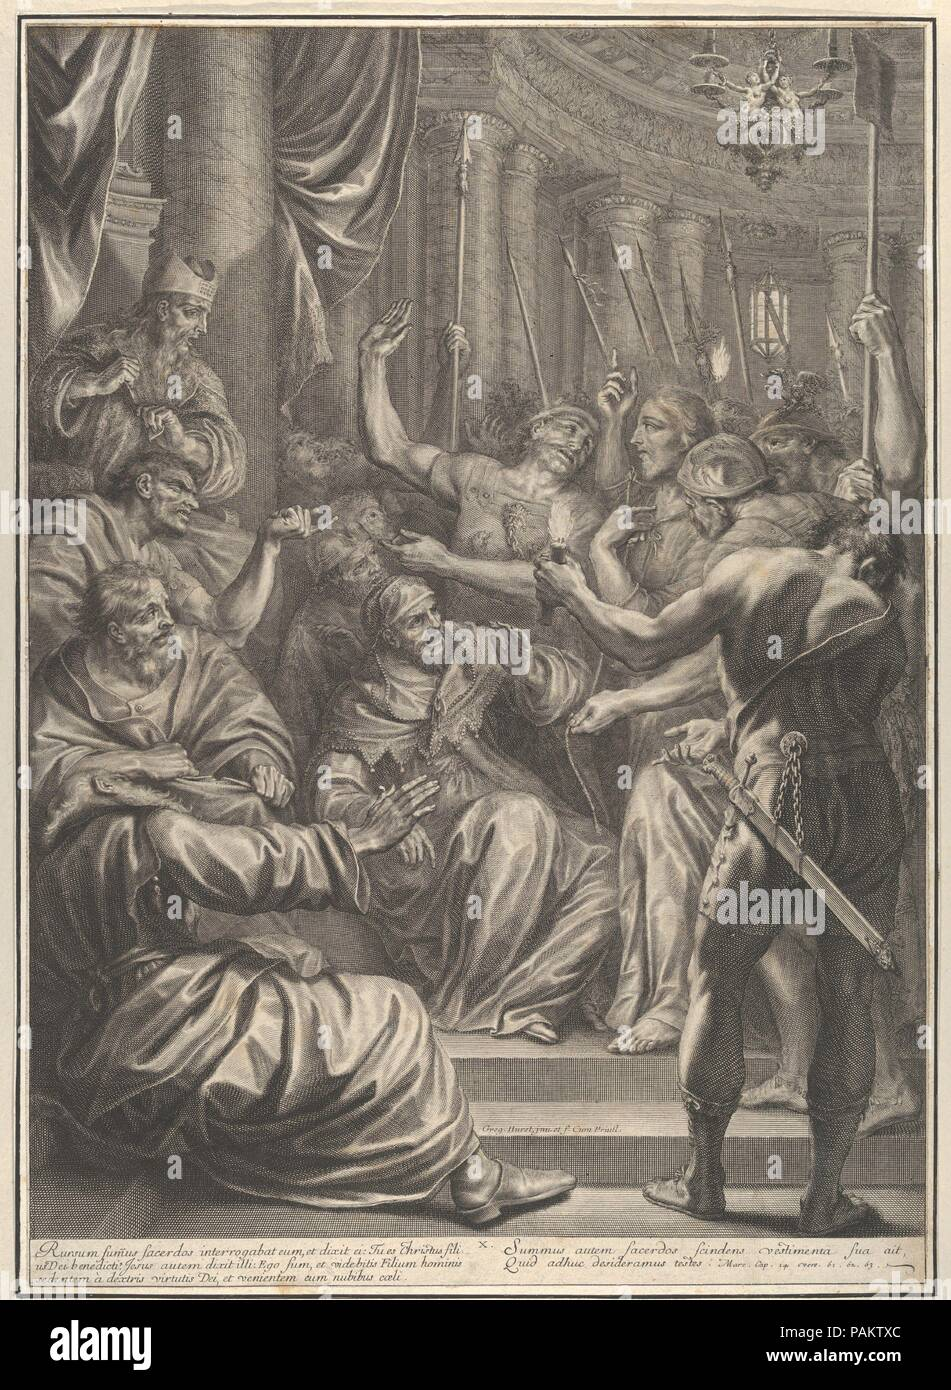 Christ Before Caiaphas, from The Passion of Christ, plate 10. Artist: Grégoire Huret (French, Lyon 1606-1670 Paris). Dimensions: Sheet: 19 3/4 × 14 3/16 in. (50.2 × 36 cm). Series/Portfolio: The Passion of Christ. Date: 1664. Museum: Metropolitan Museum of Art, New York, USA. Stock Photo